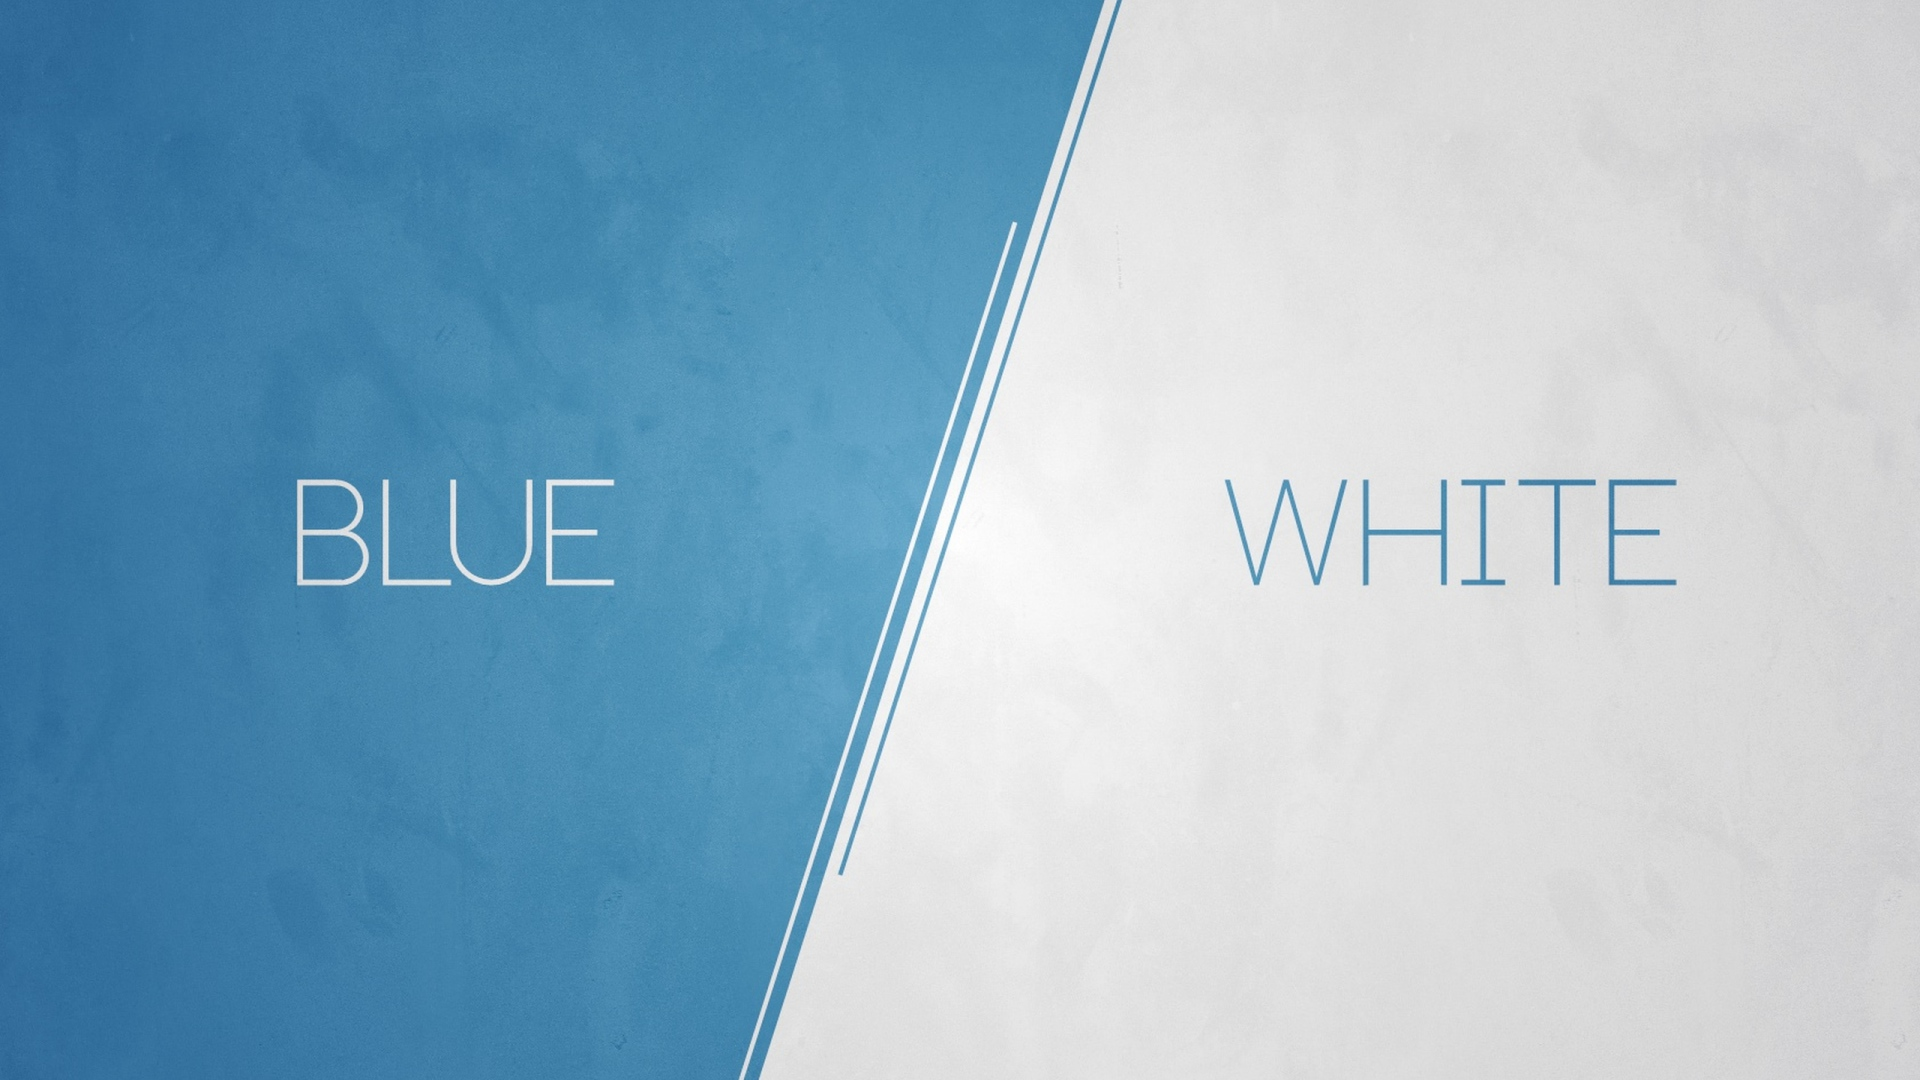 White Blue Lettering Wallpaper   MixHD wallpapers 1920x1080